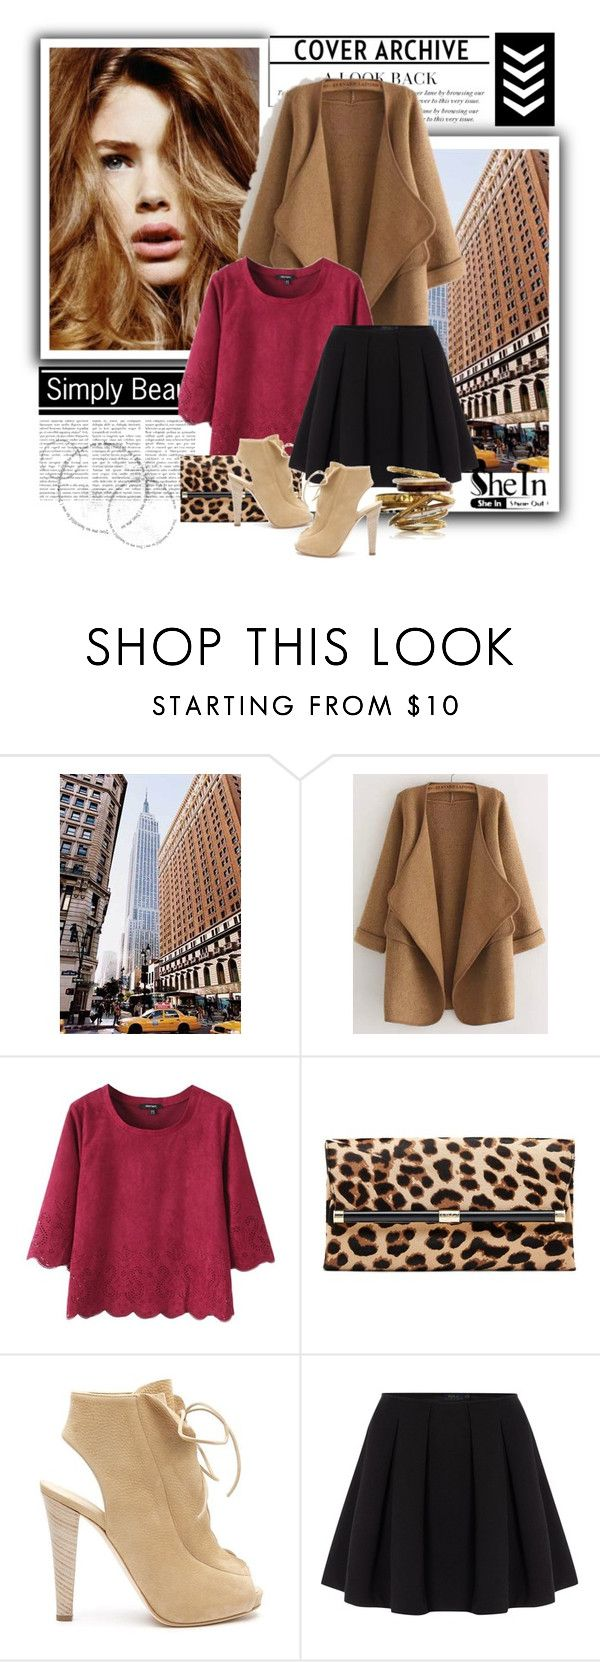 """""""Khaki Cardi"""" by lmichelle ❤ liked on Polyvore featuring National Geographic Home, Diane Von Furstenberg, Thakoon, Polo Ralph Lauren, B. Ella and Sheinside"""